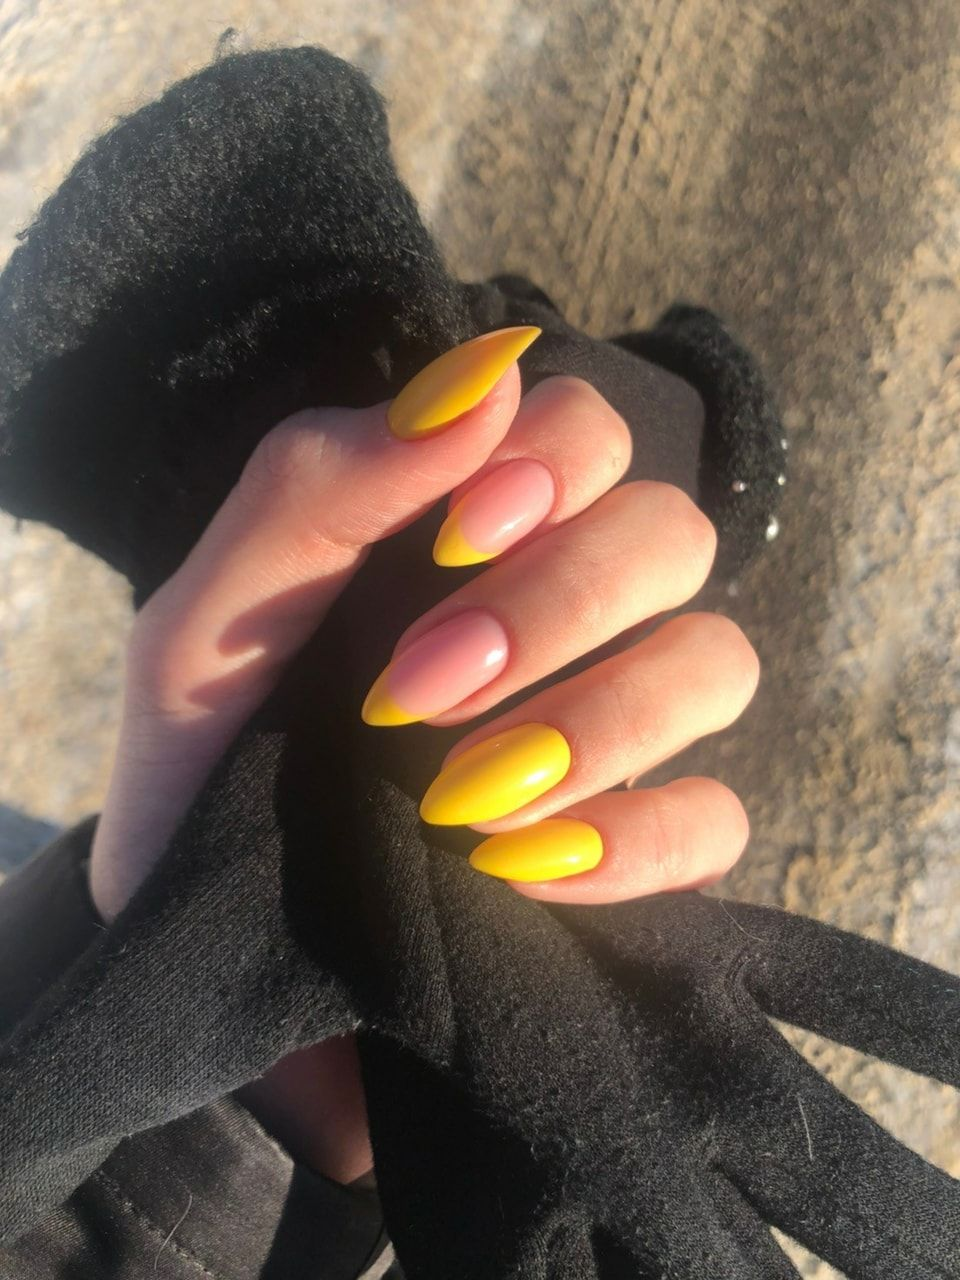 Shared By Amaliya Find Images And Videos About Nails On We Heart It The App To Get Lost In What You Love In 2020 Manicure Nails Photo